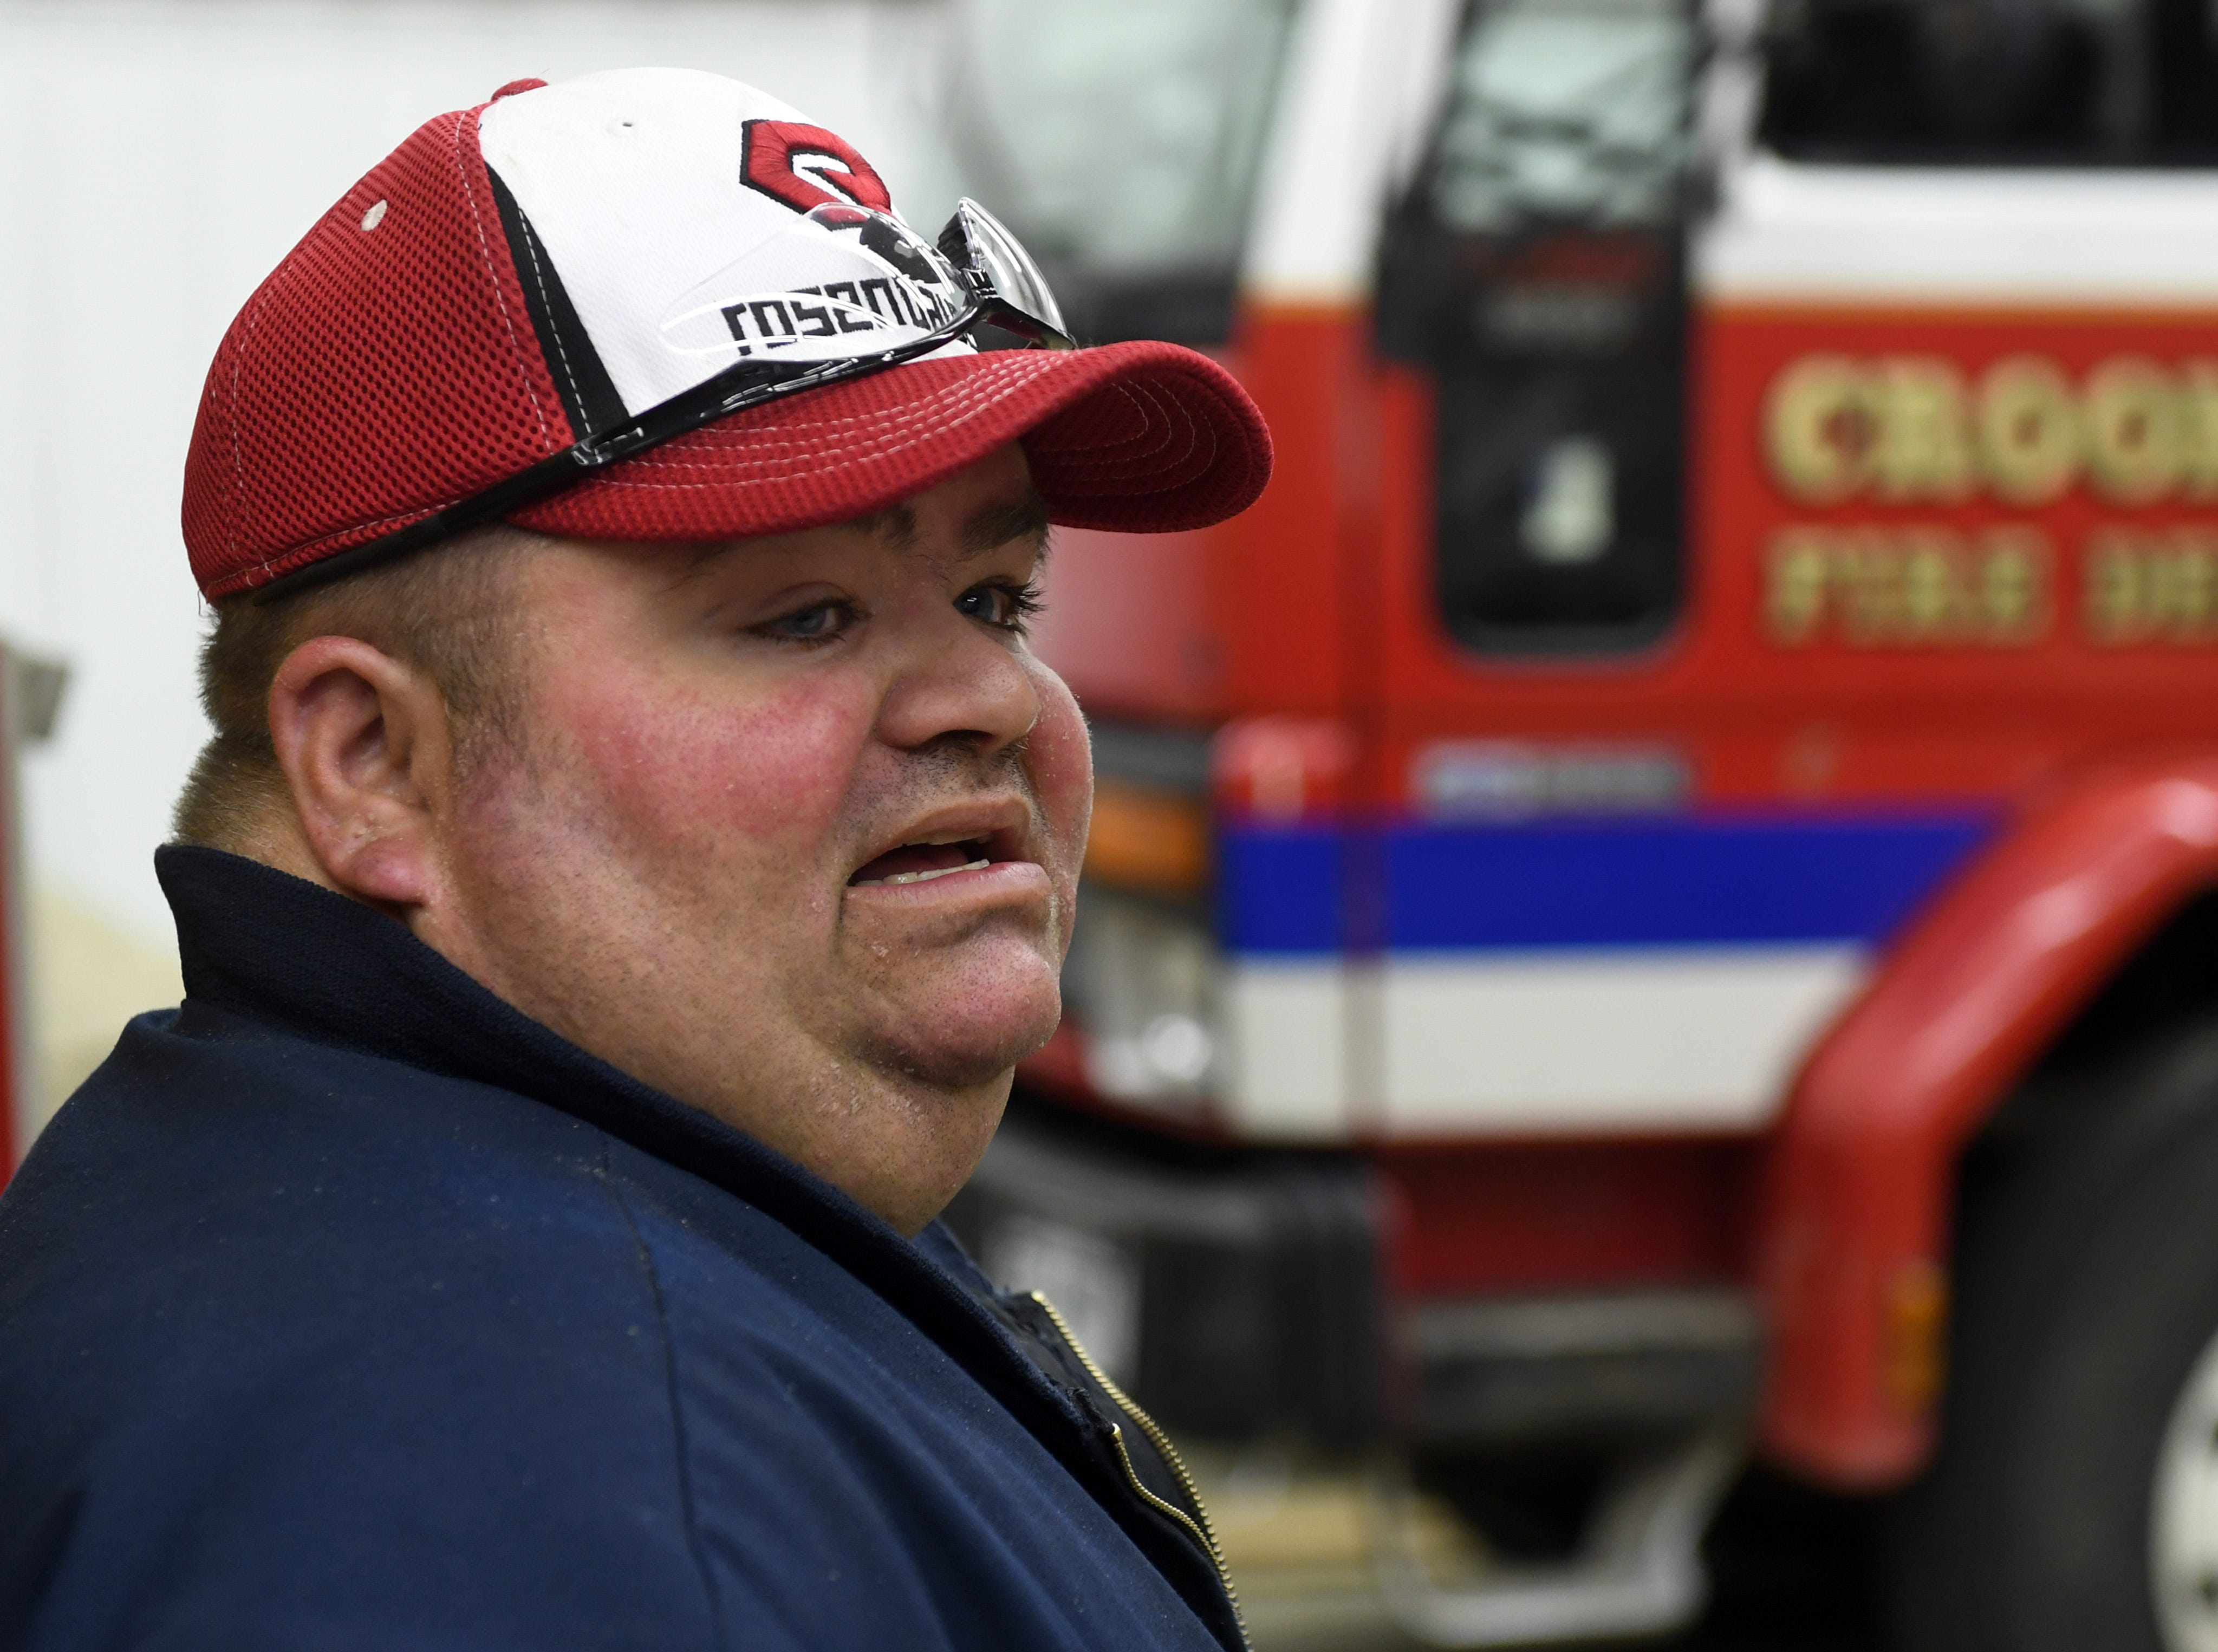 Steve Boer, volunteer firefighter, describes the operations of a rural fire department in the equipment garage Tuesday, May 7, in Crooks. Boer volunteers for the departments in both Crooks and Lyons, where many residents' homes can be difficult to access.